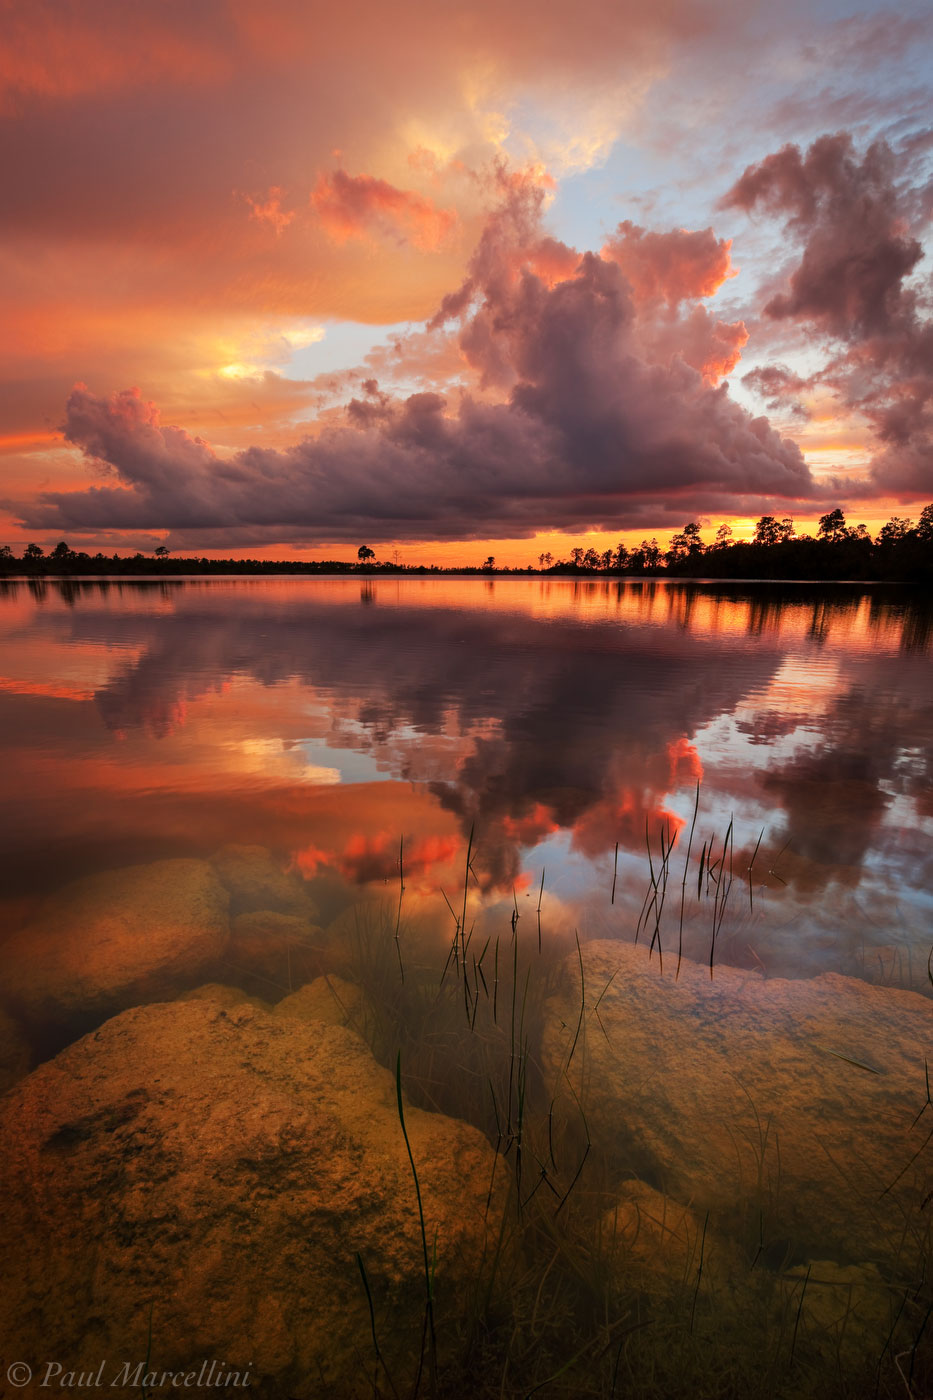 A fiery sunset over a favorite spot in the Everglades.